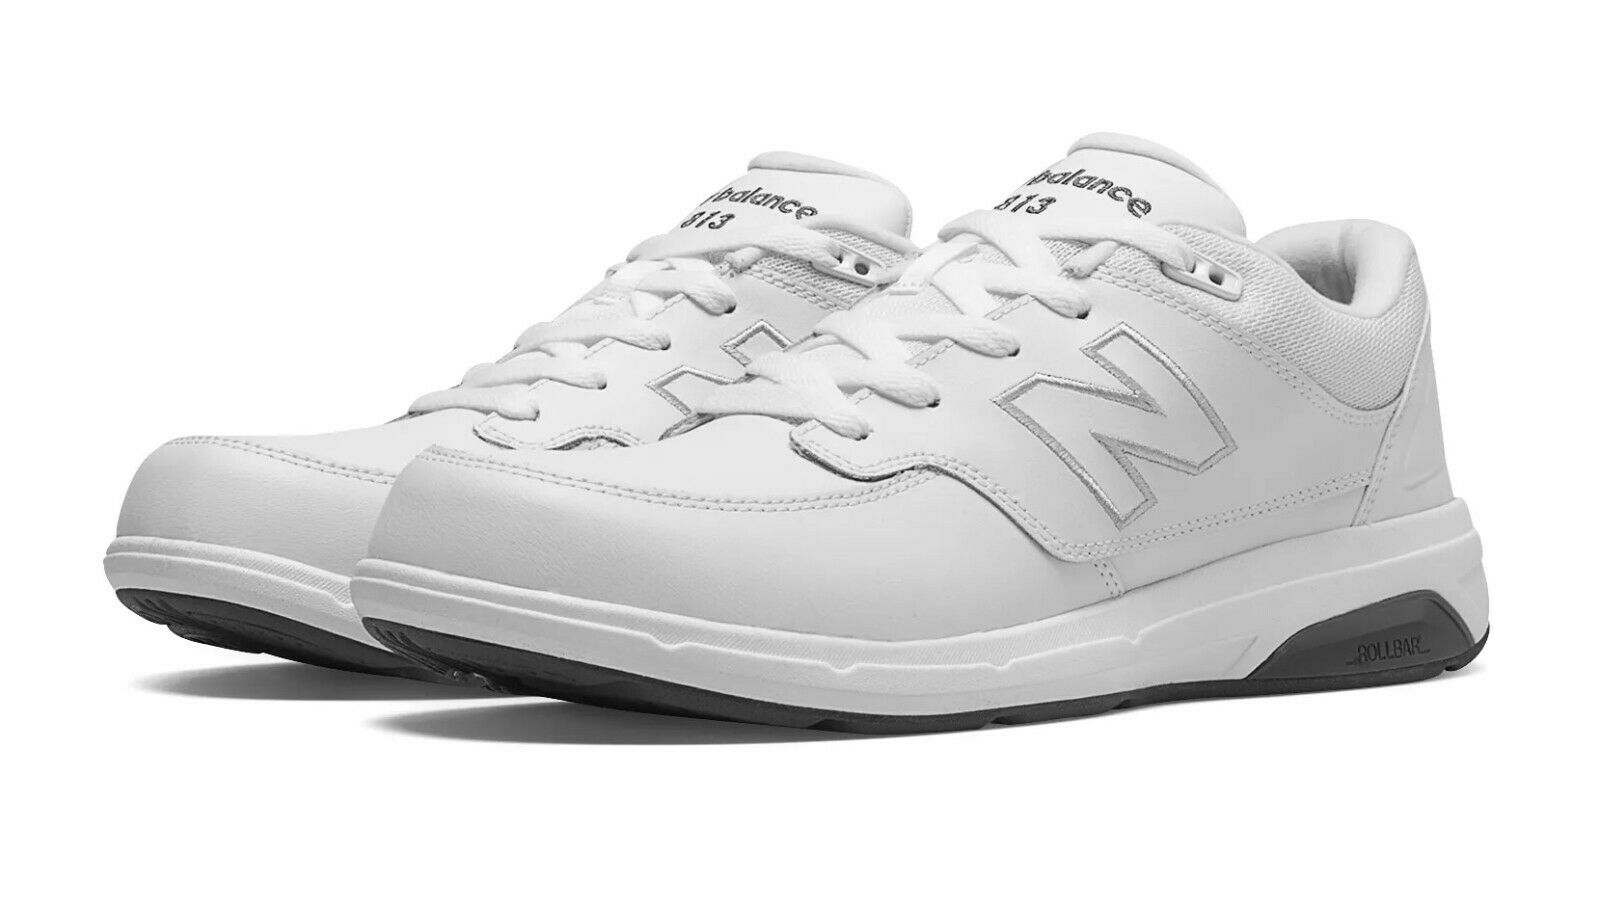 New Balance Men's MW813WT Walking shoes, White, Size 8.5D, New in Box